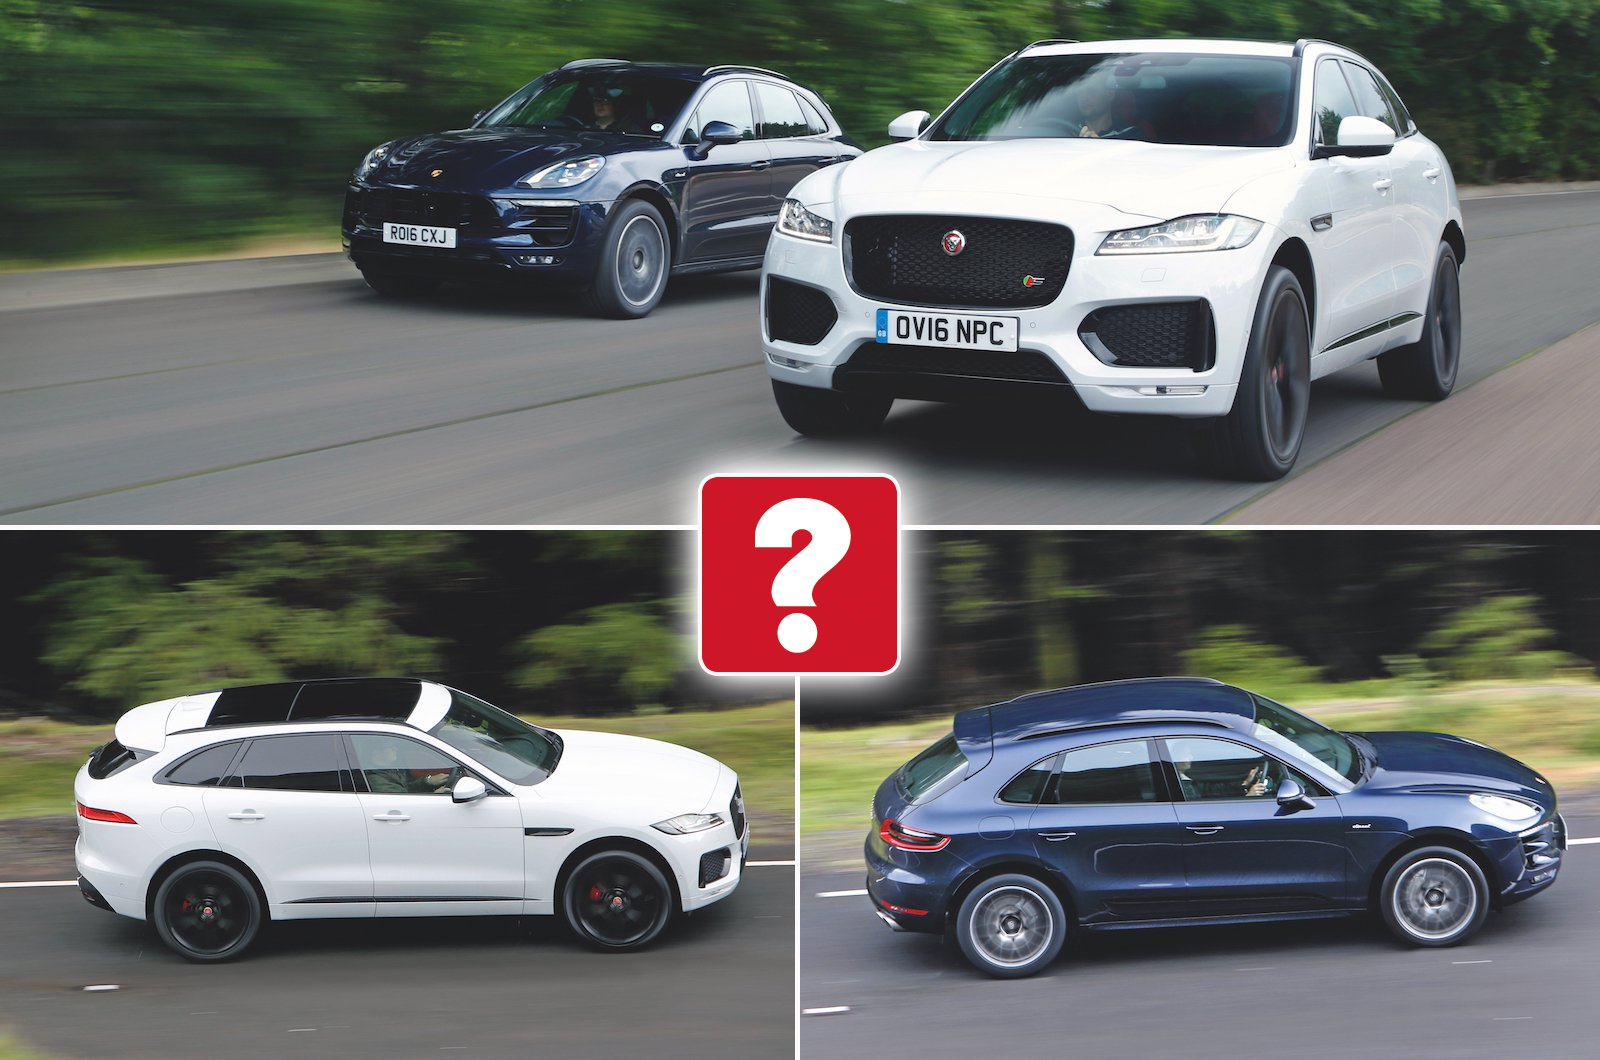 Used test: Jaguar F-Pace vs Porsche Macan